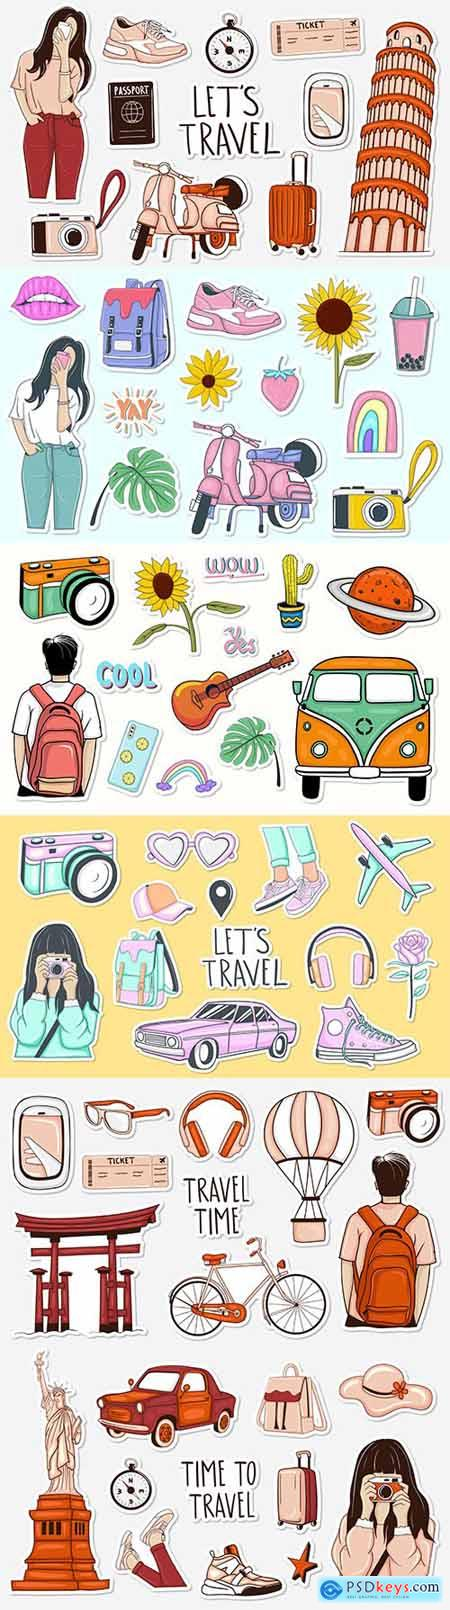 Tourism and recreation collection of colorful painted stickers